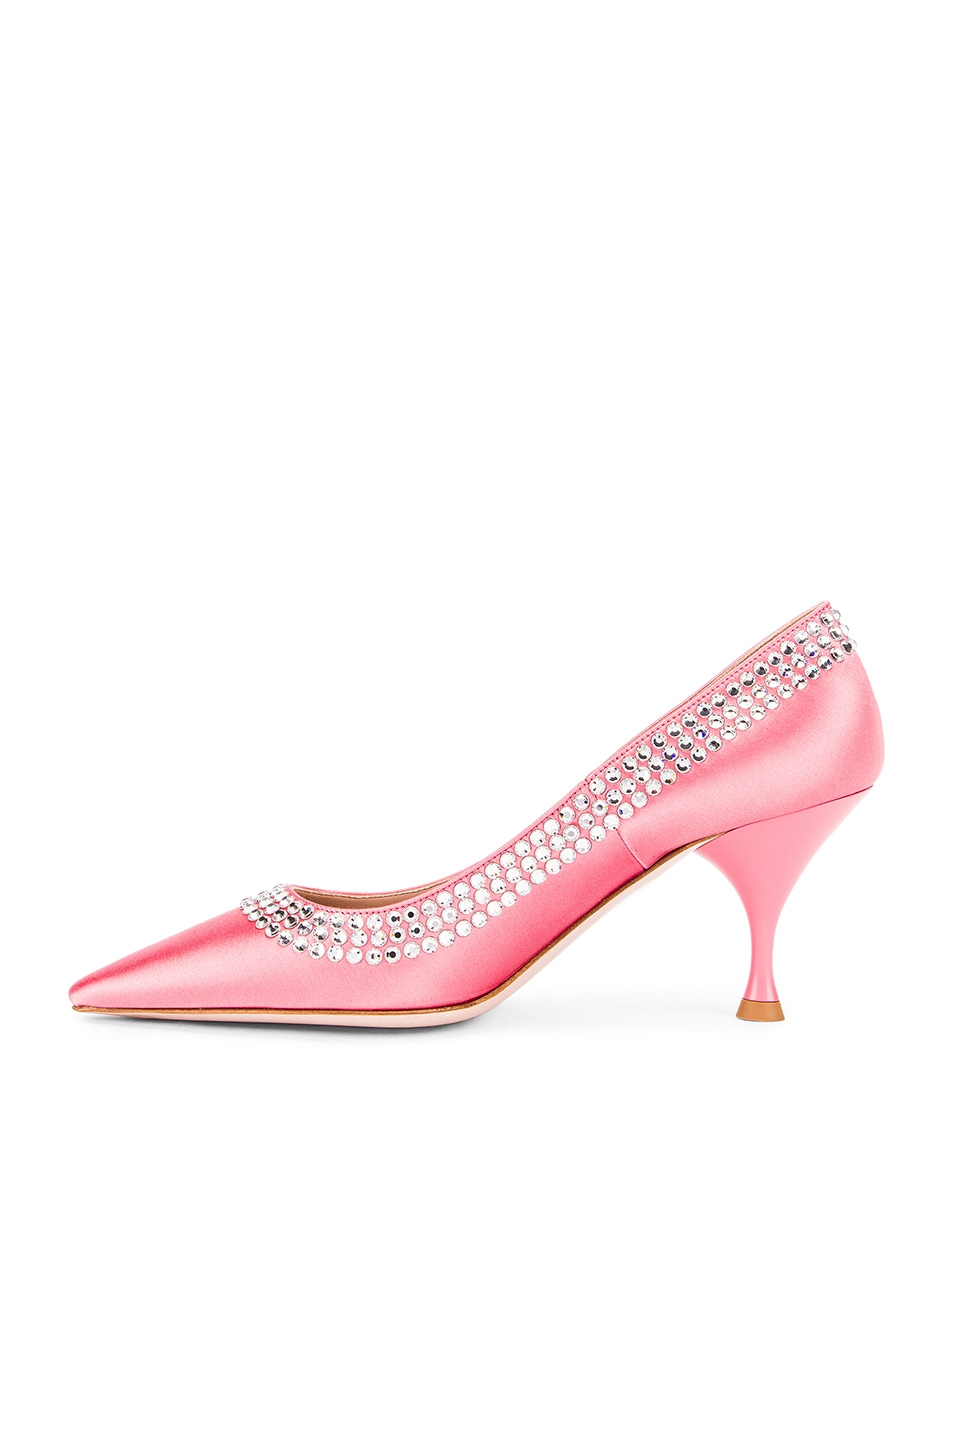 Image 5 of Miu Miu Crystal Rainbow Heels in Rosa